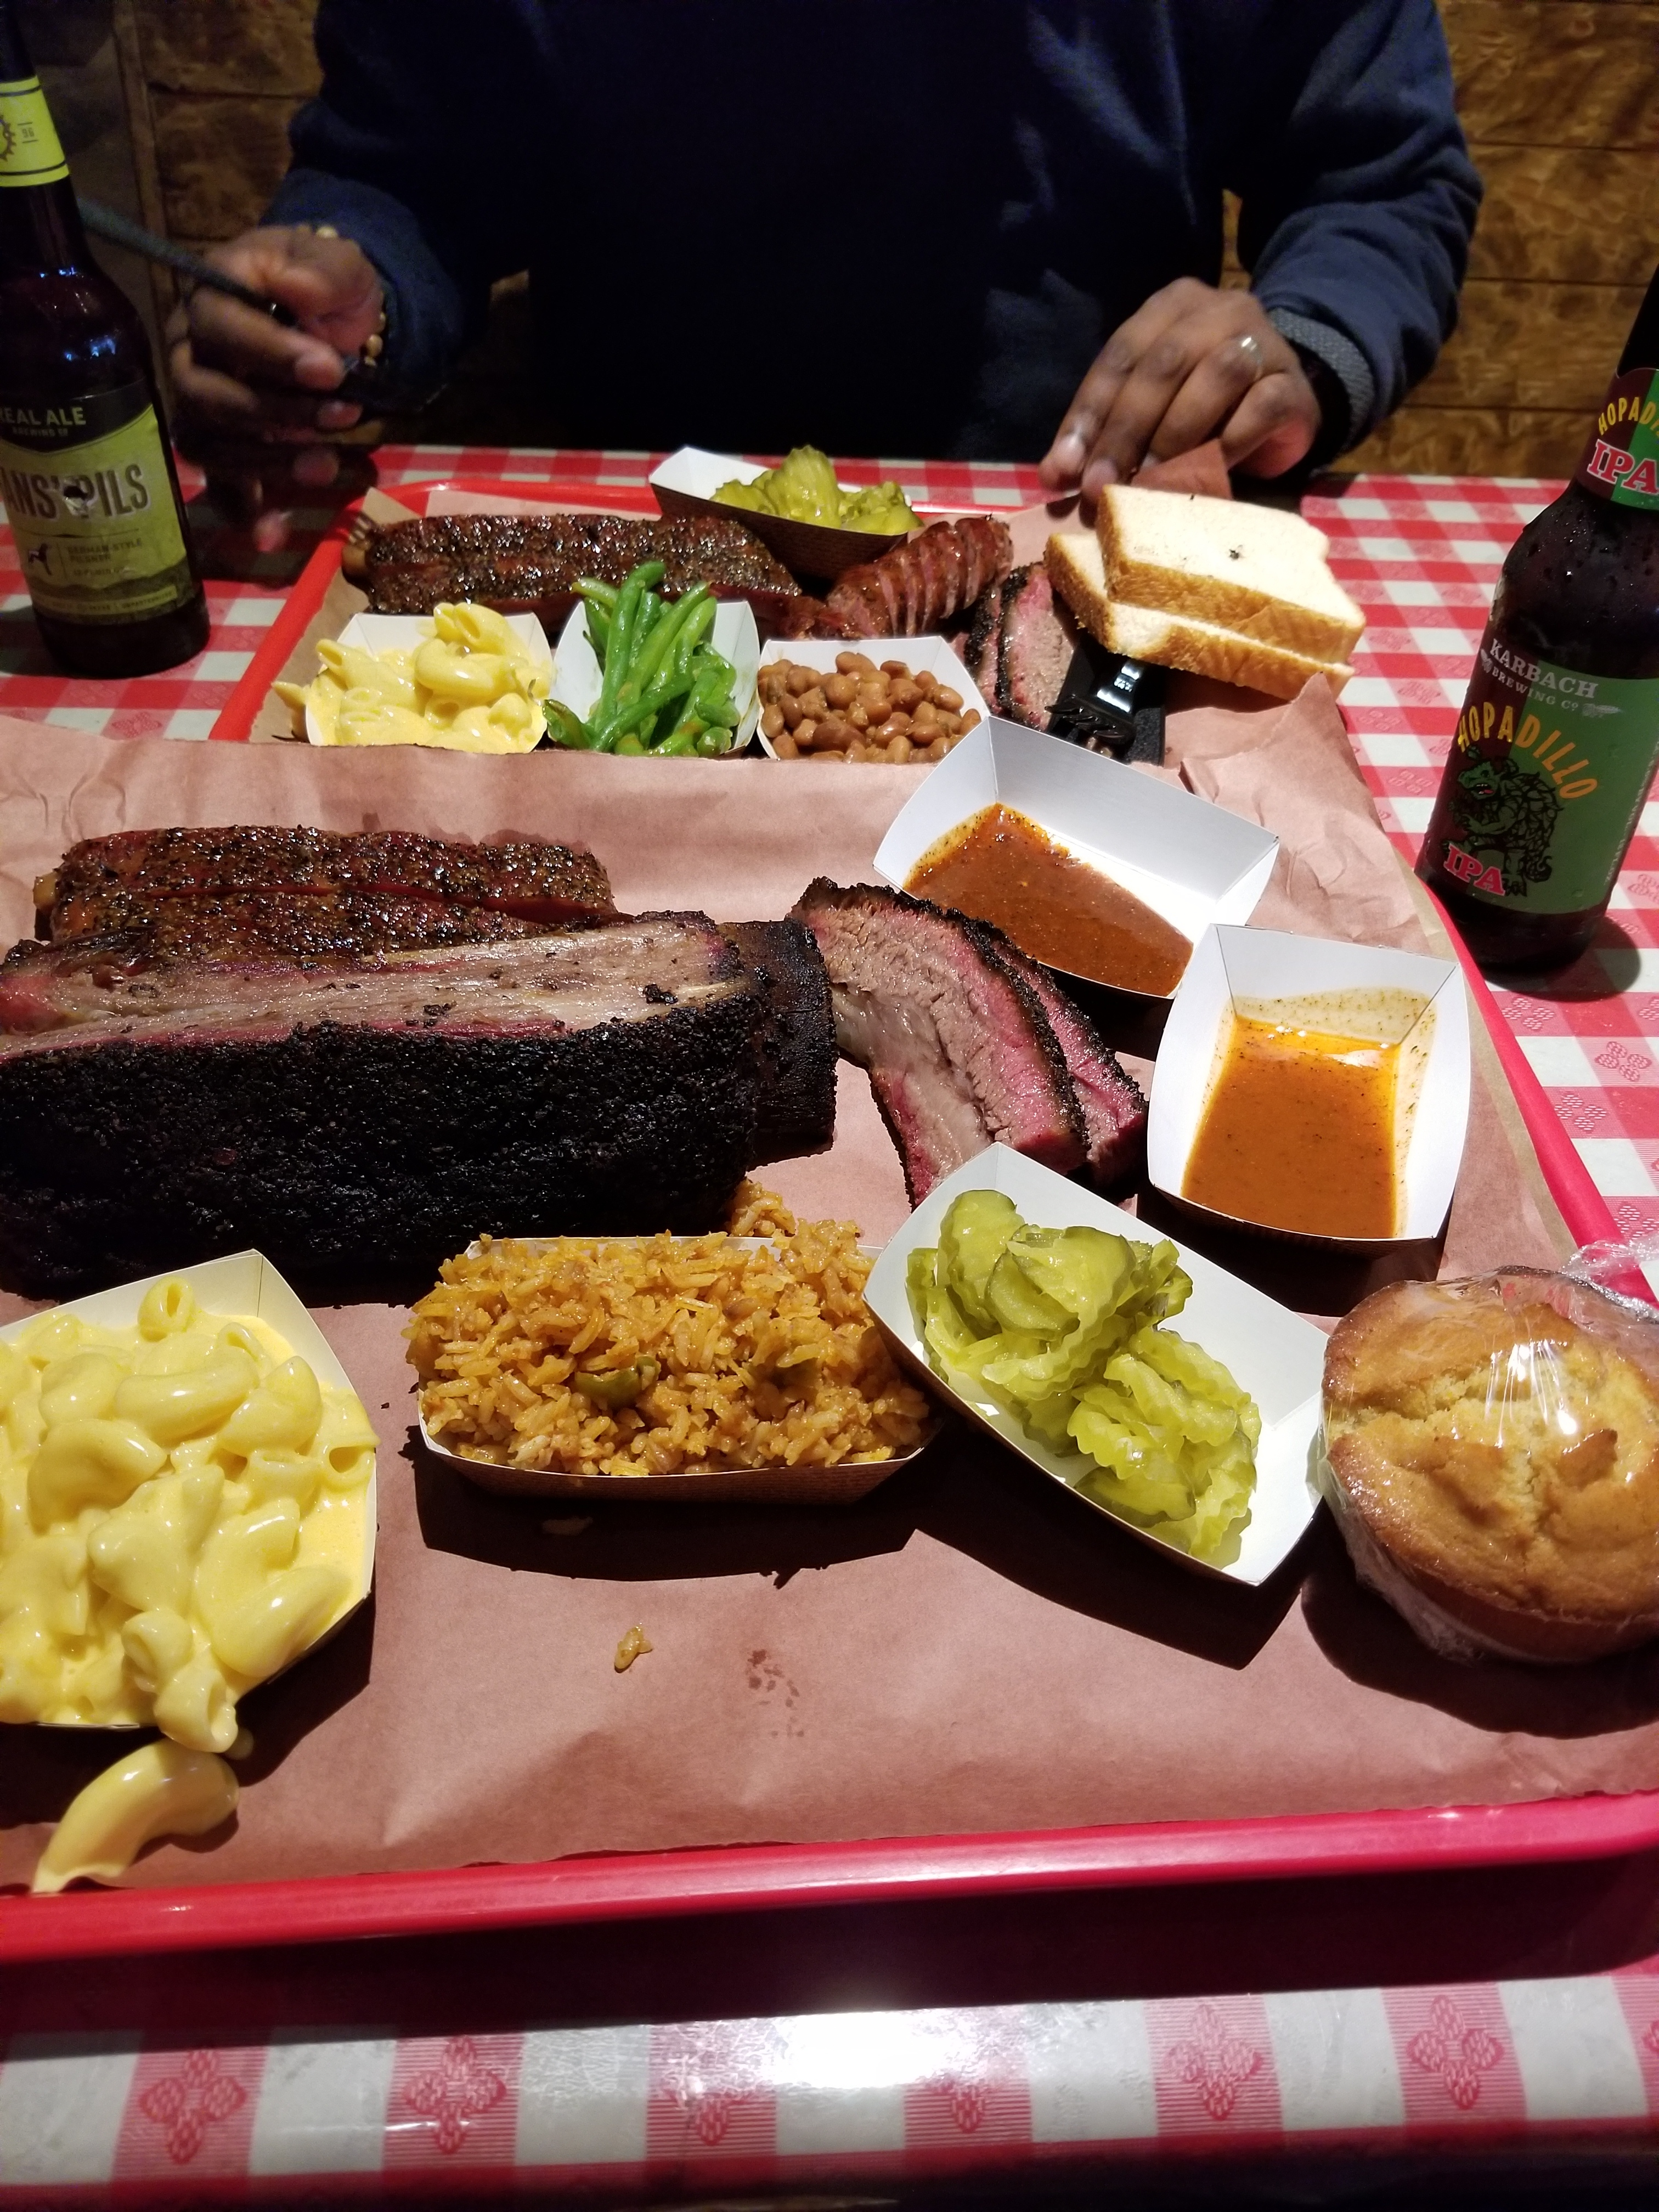 An image of a BBQ spread from Austin